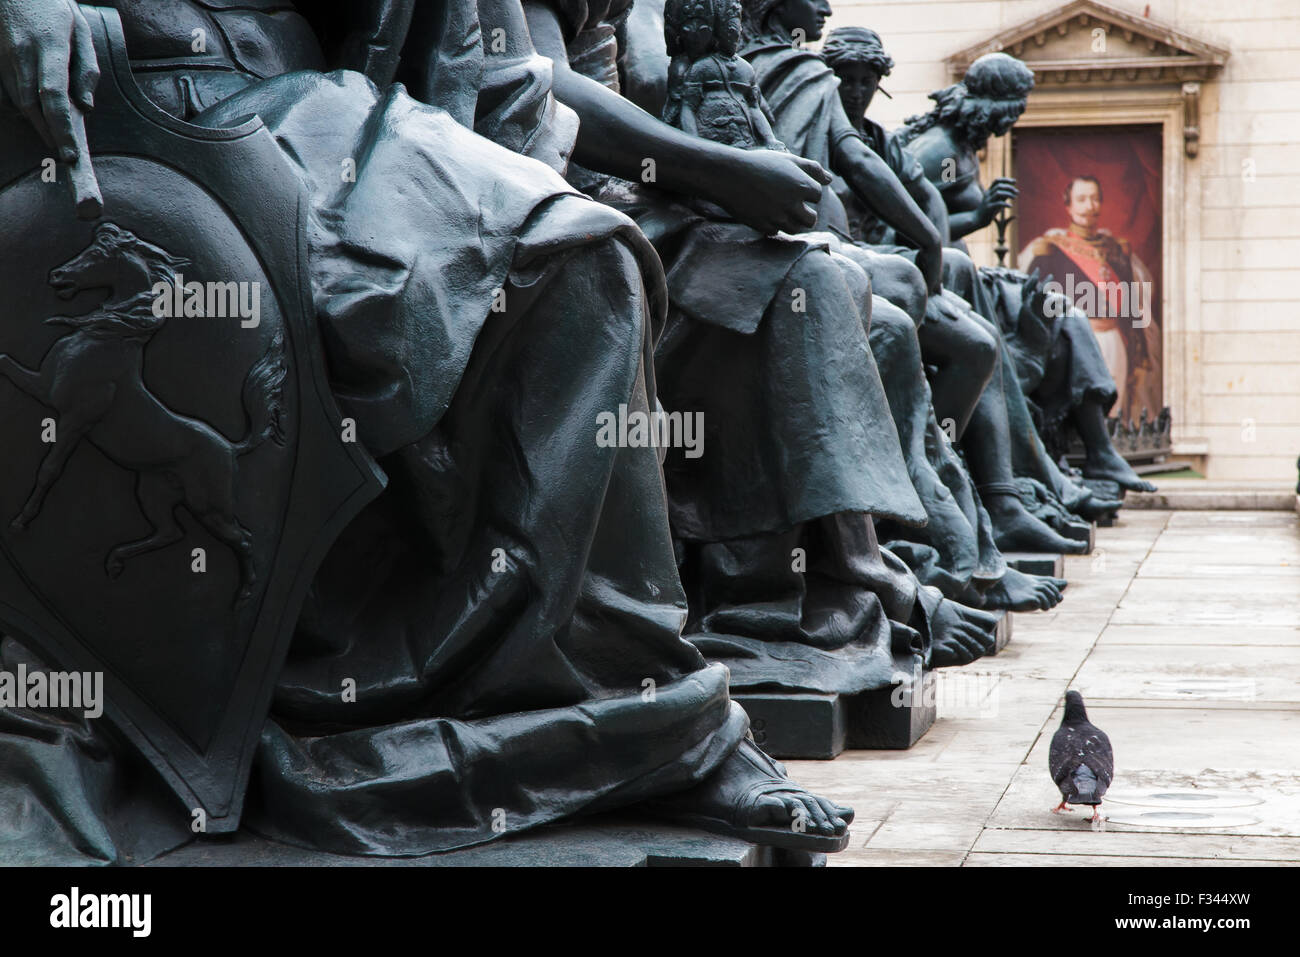 statues and pigeon outside the Musée d'Orsay, Paris, France - Stock Image